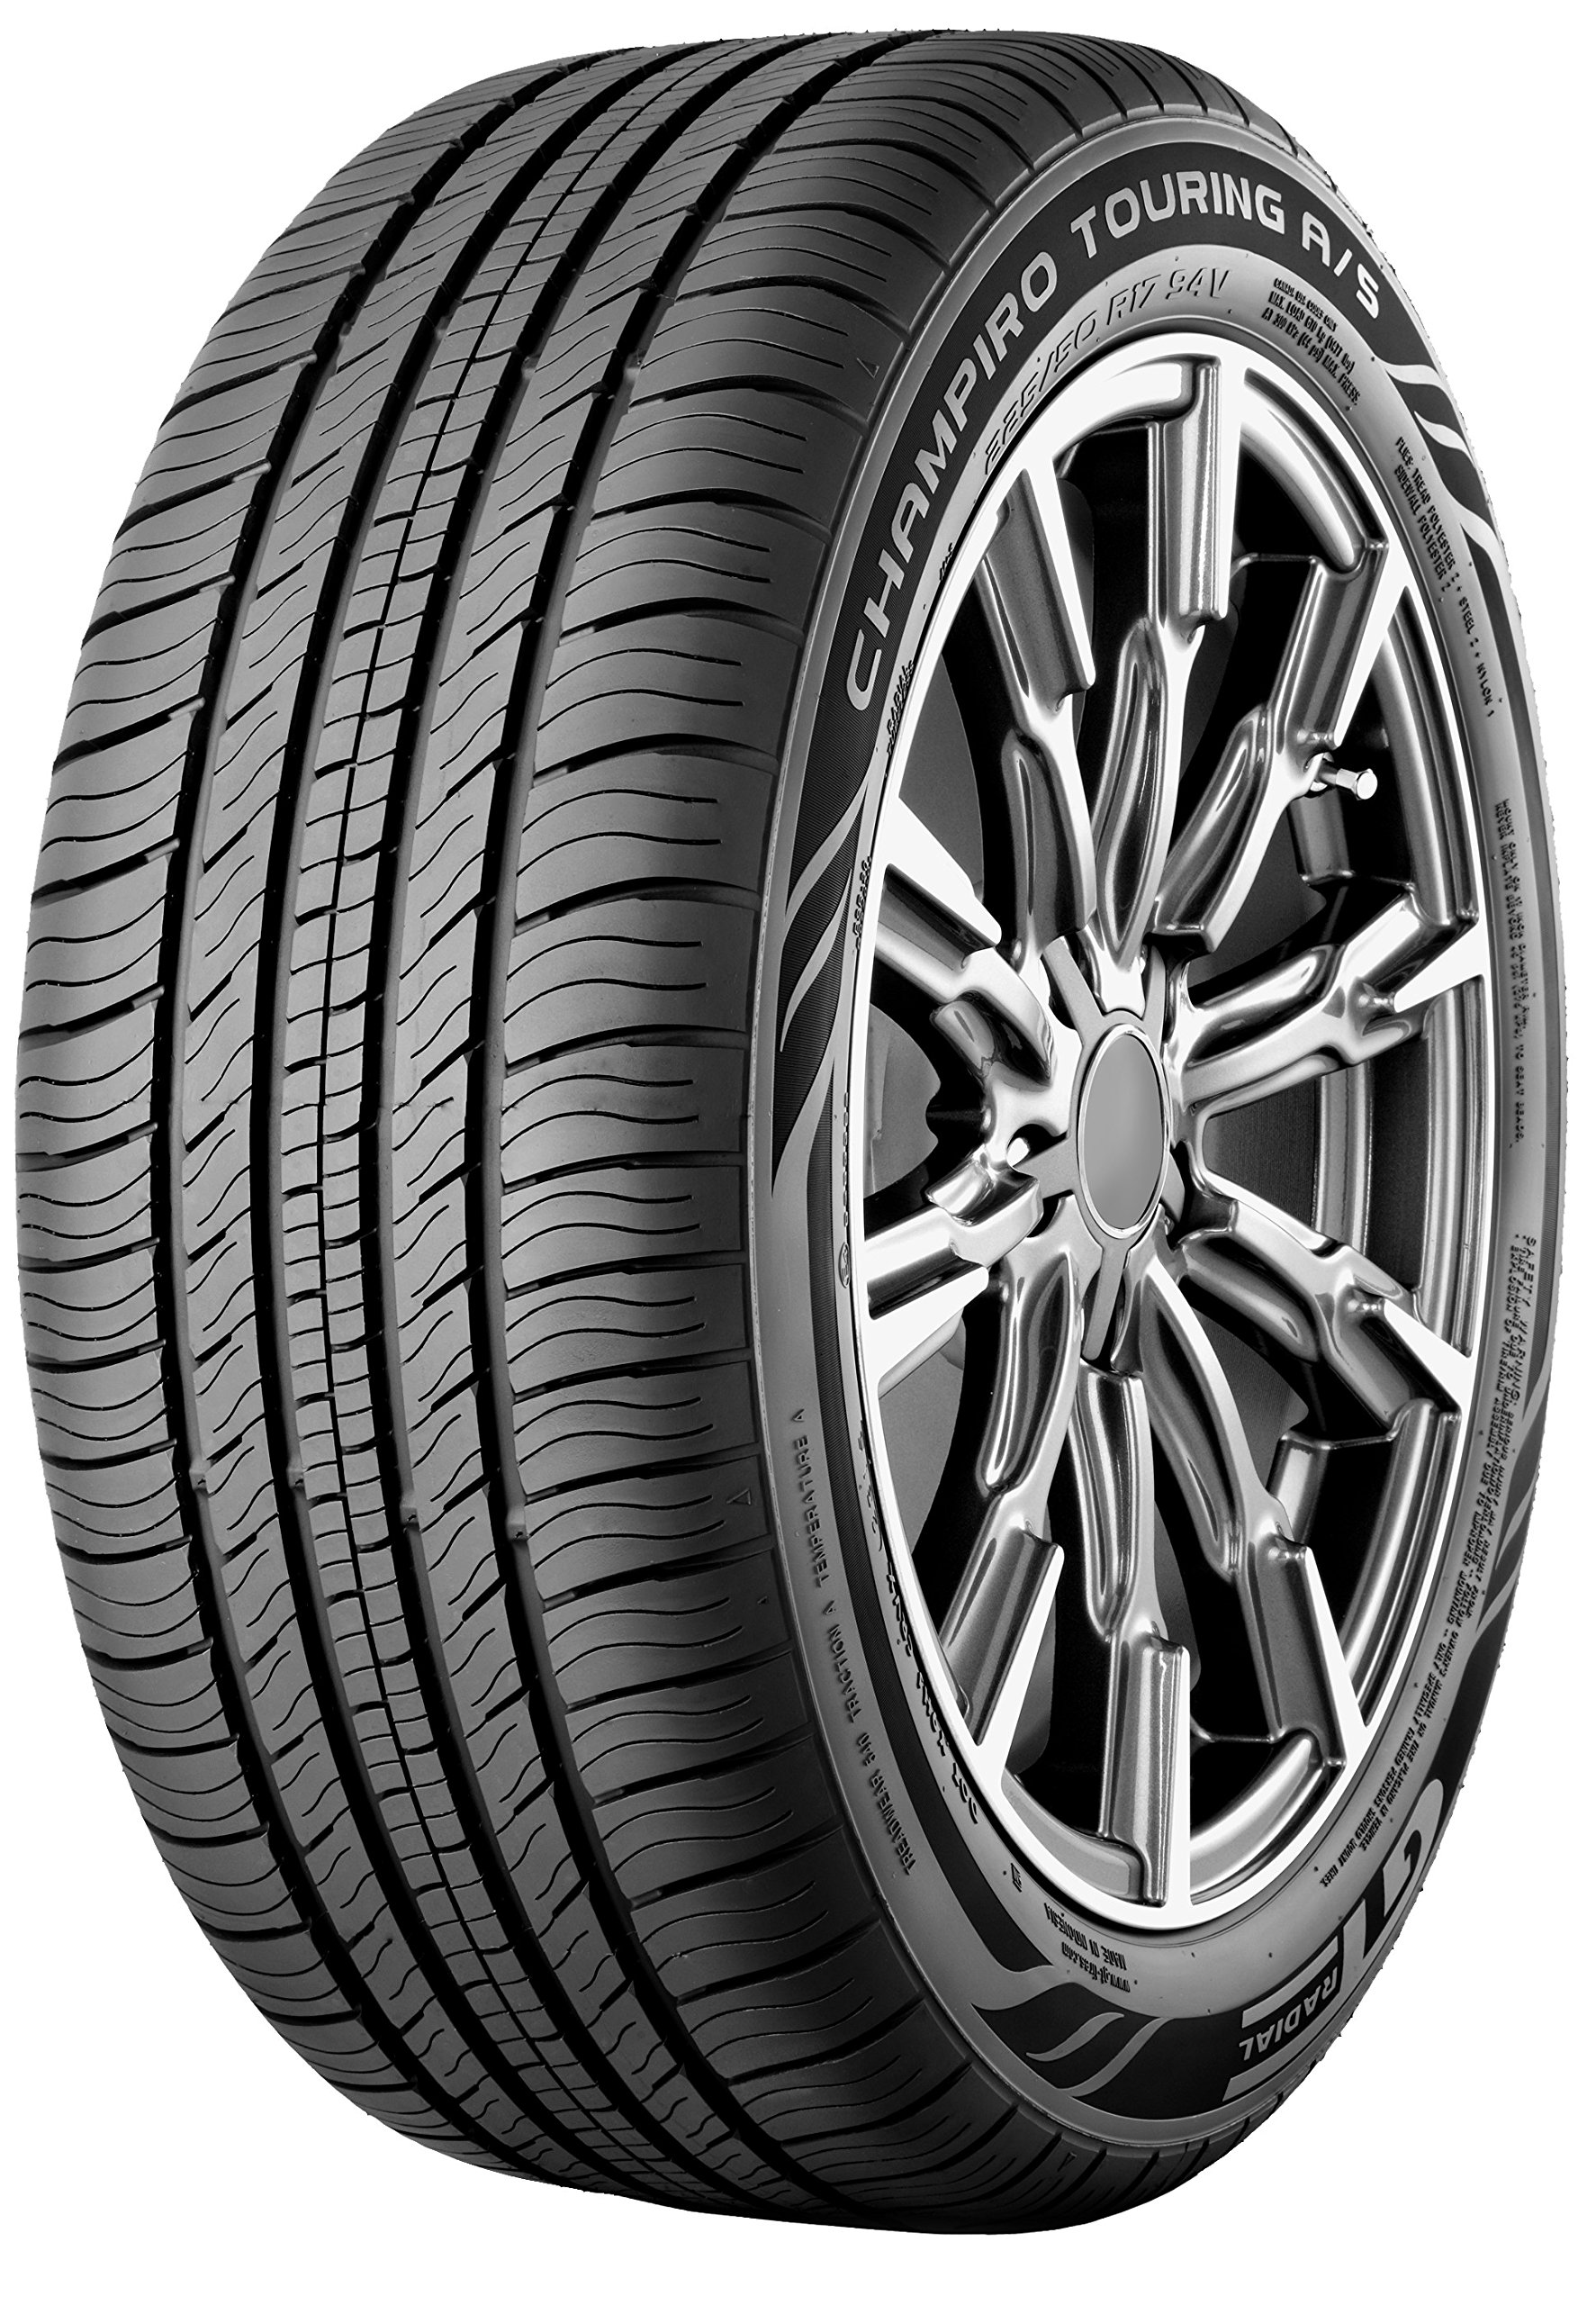 GT Radial CHAMPIRO TOURING A/S Radial Tire - 235/60R17 102T